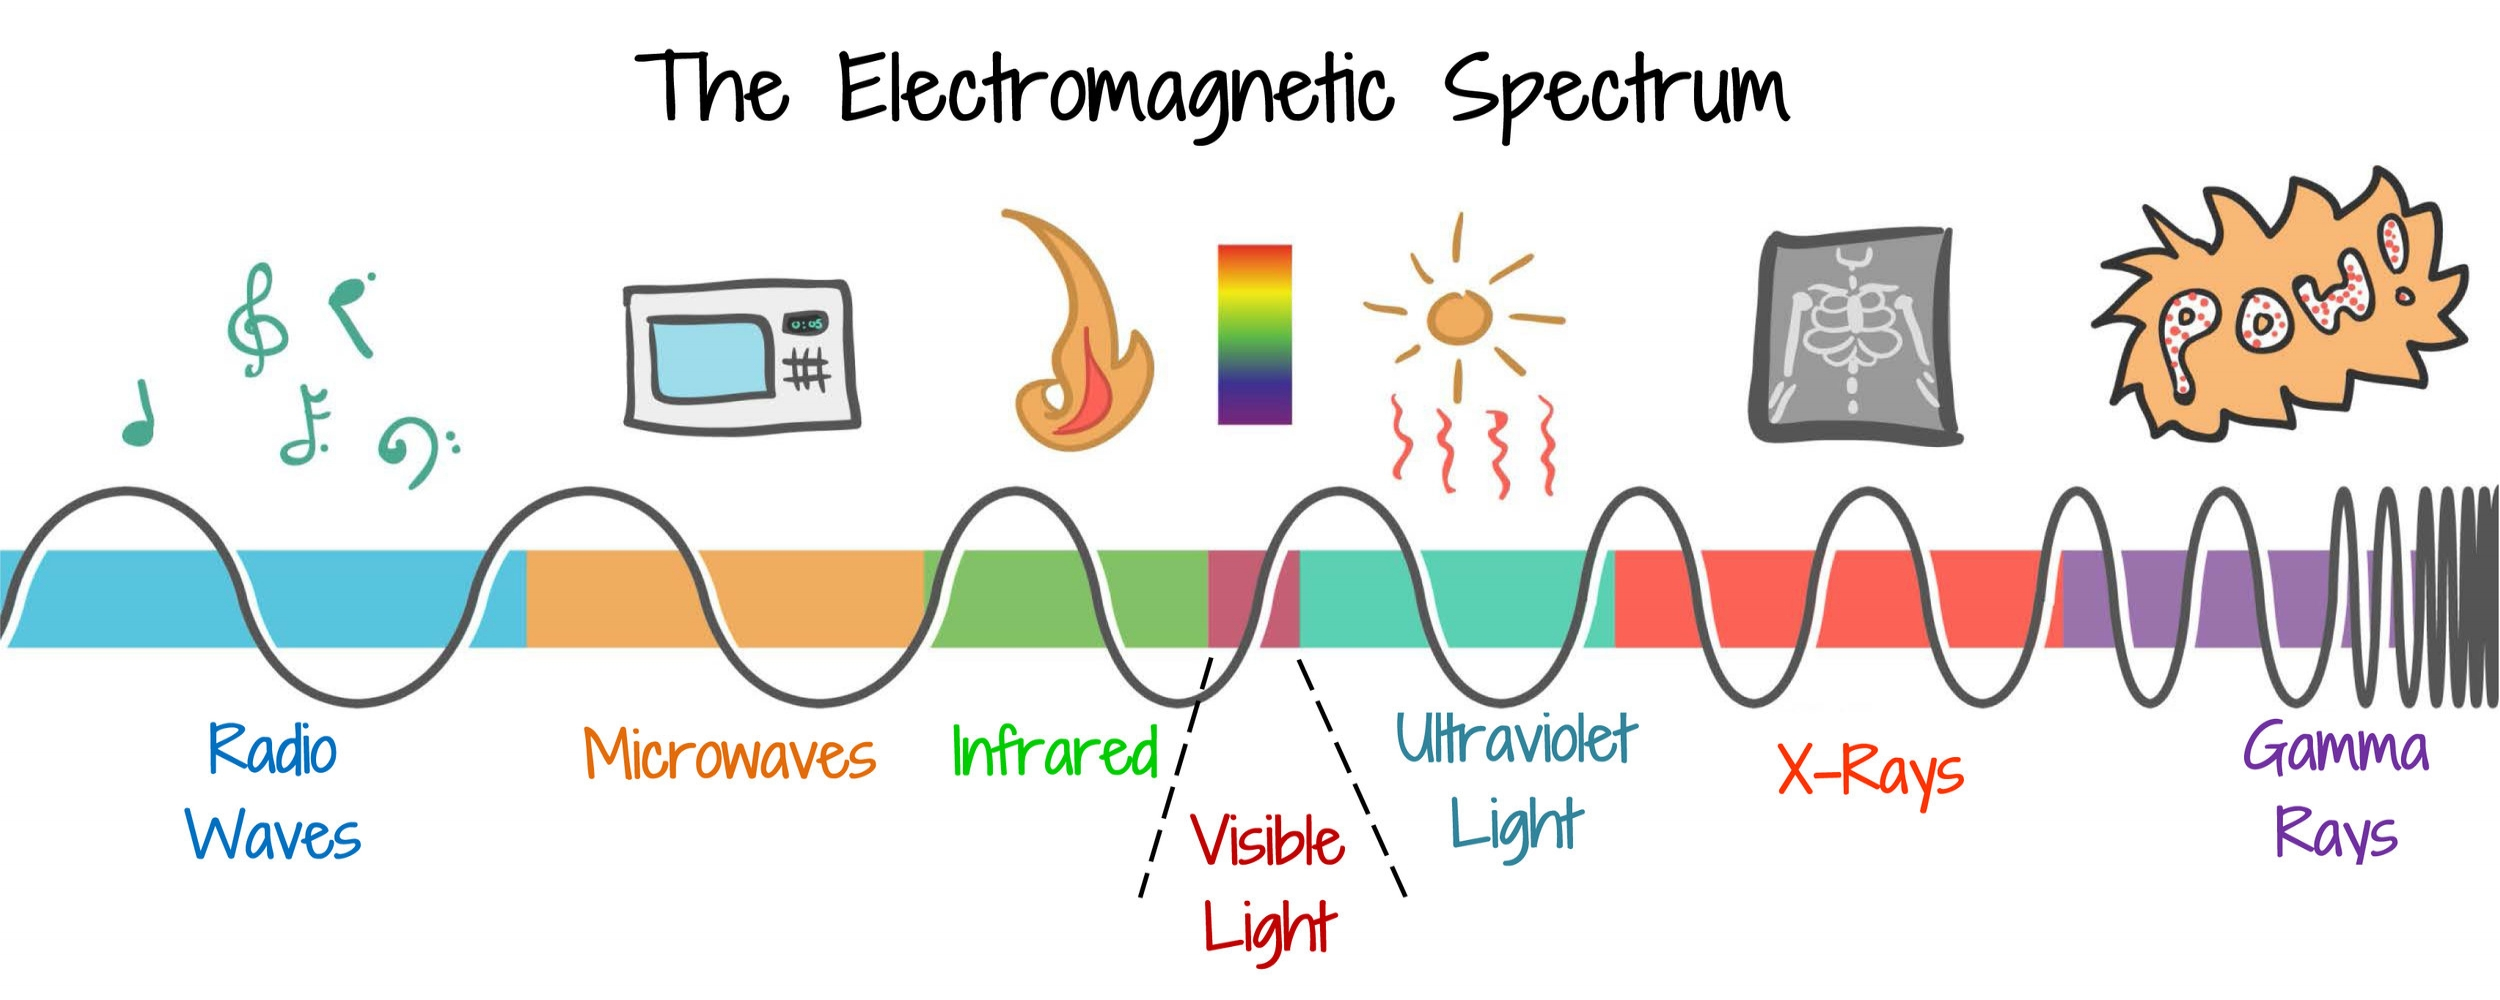 The Electromagnetic Spectrum.jpg